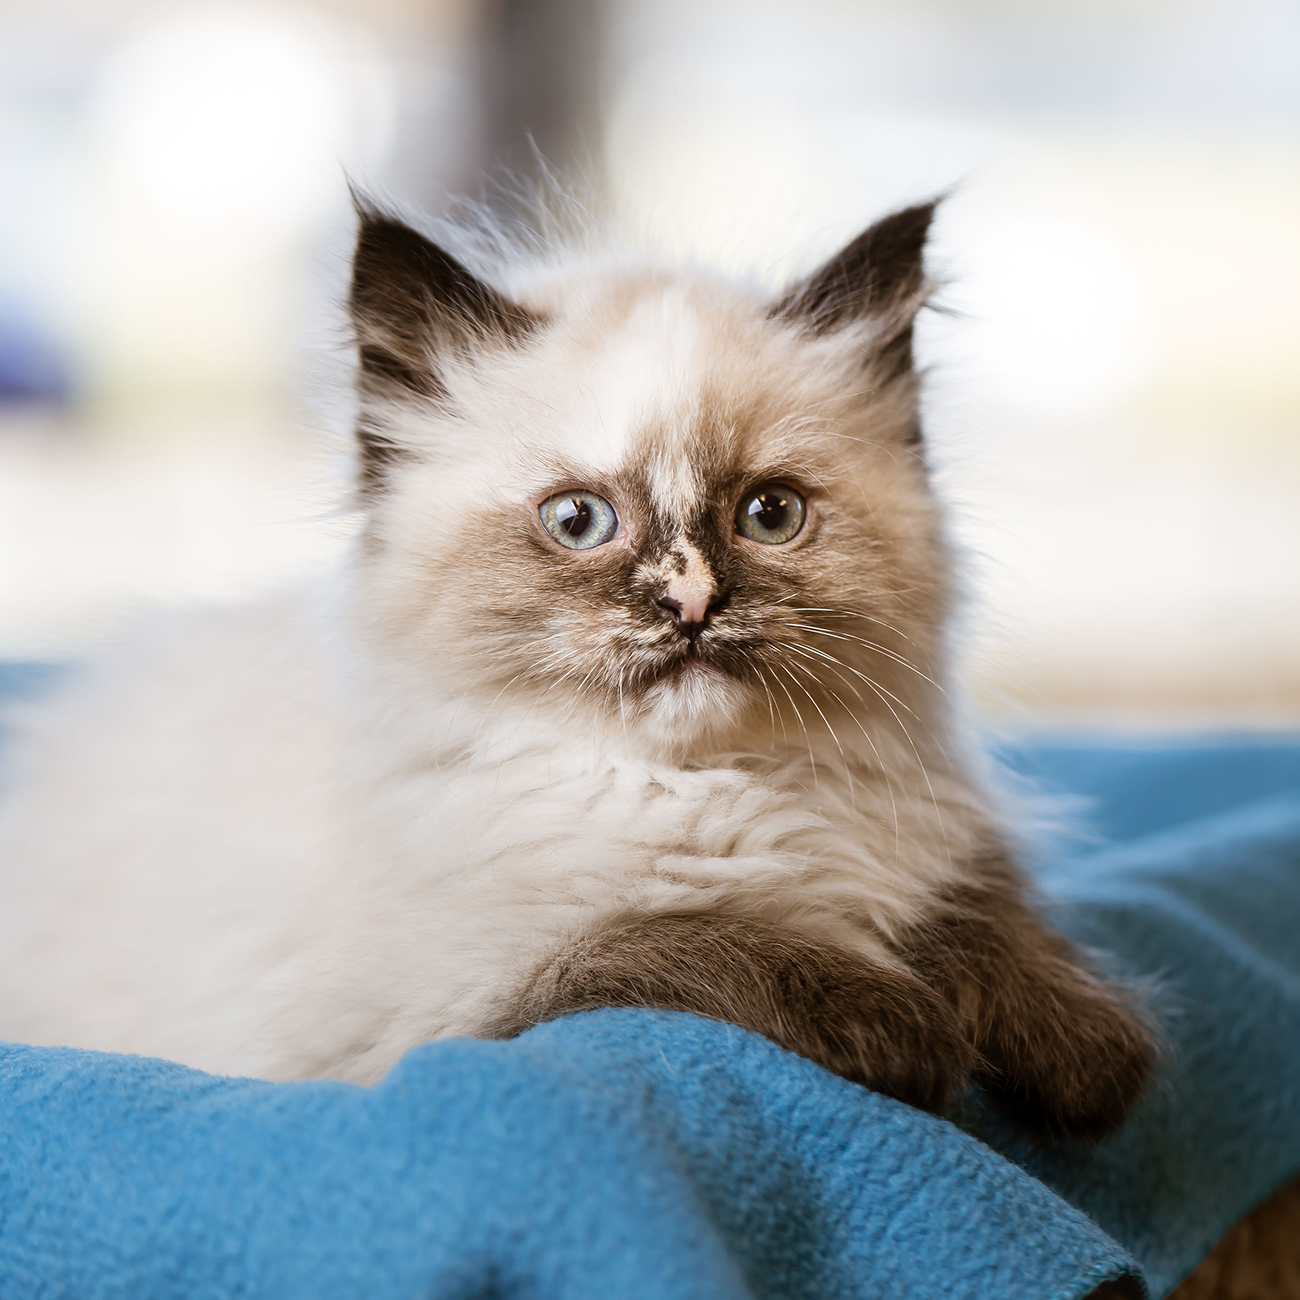 Fluffy cat sits on blue blanket